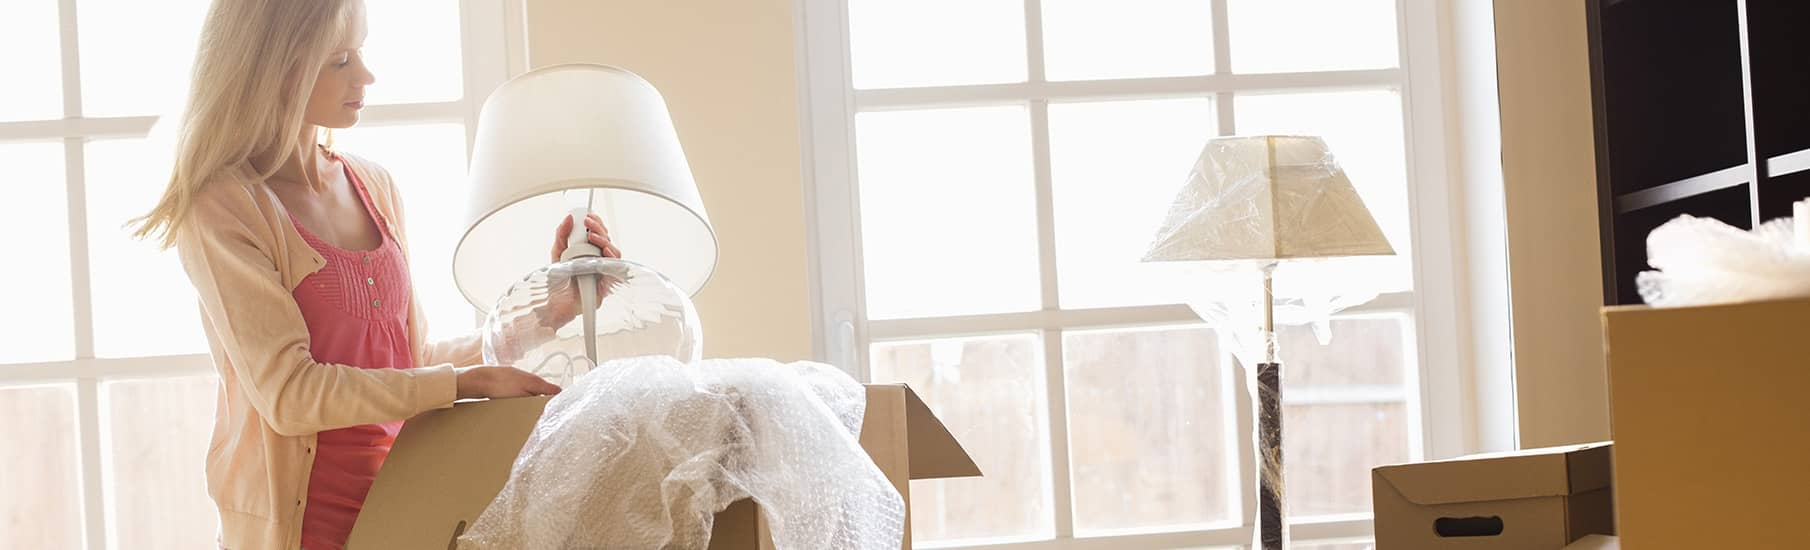 Removal costs: average cost of home removals